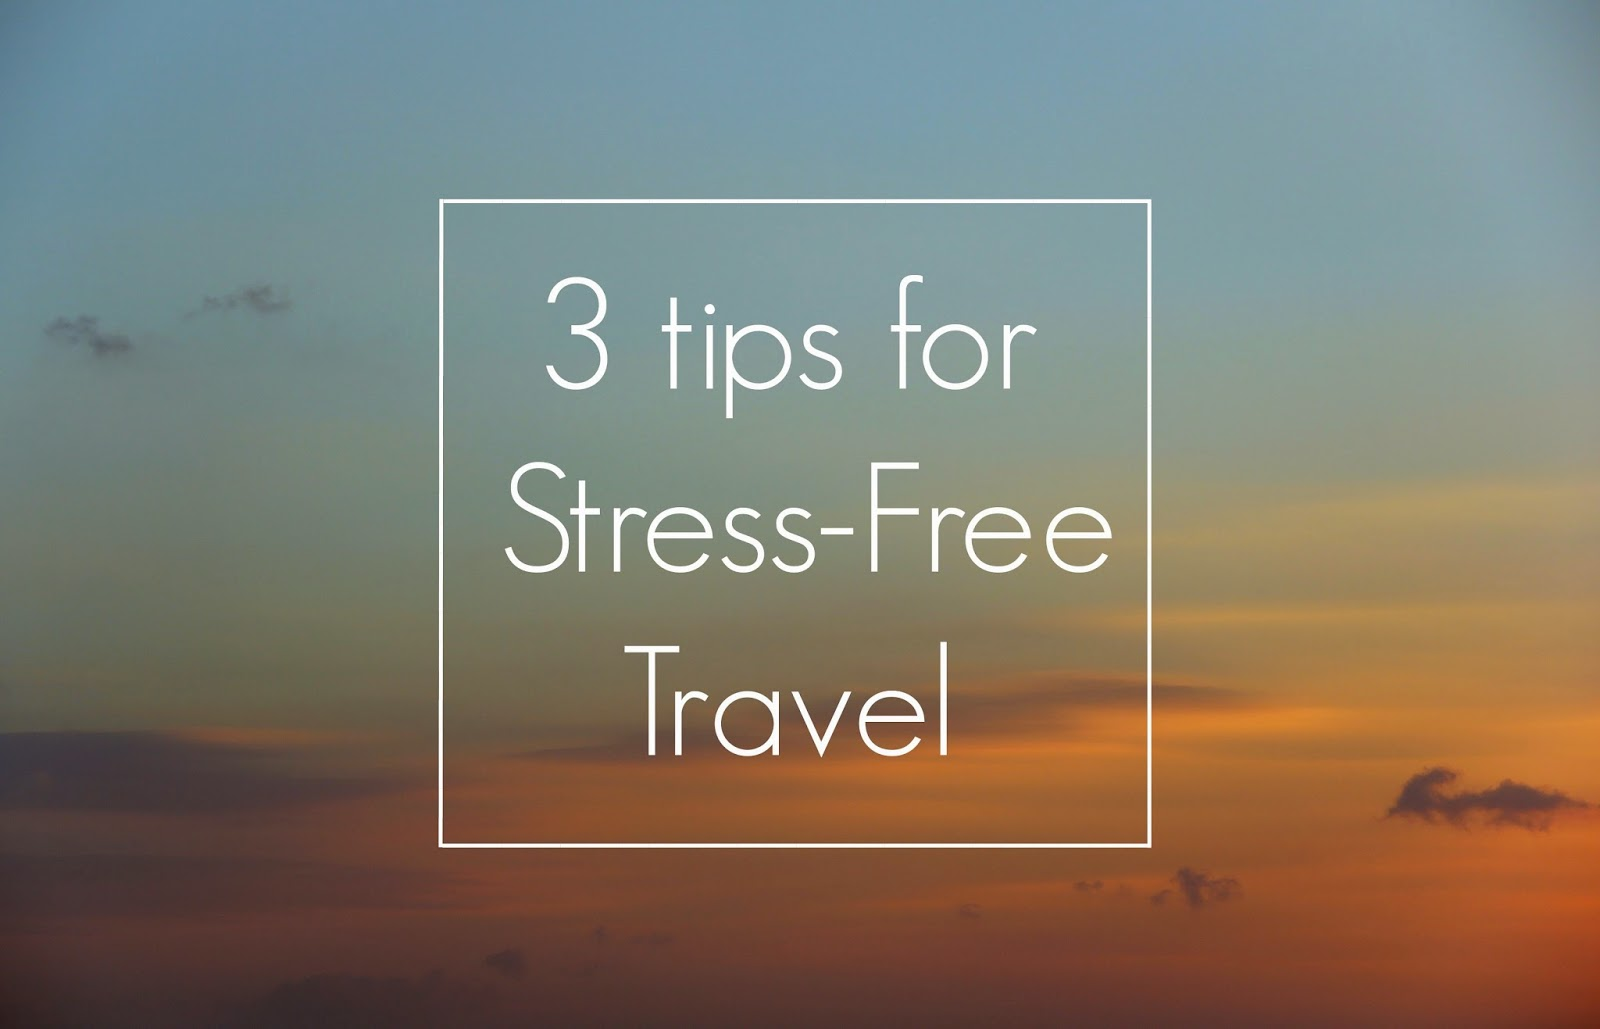 3 tips for Stress-Free Travel